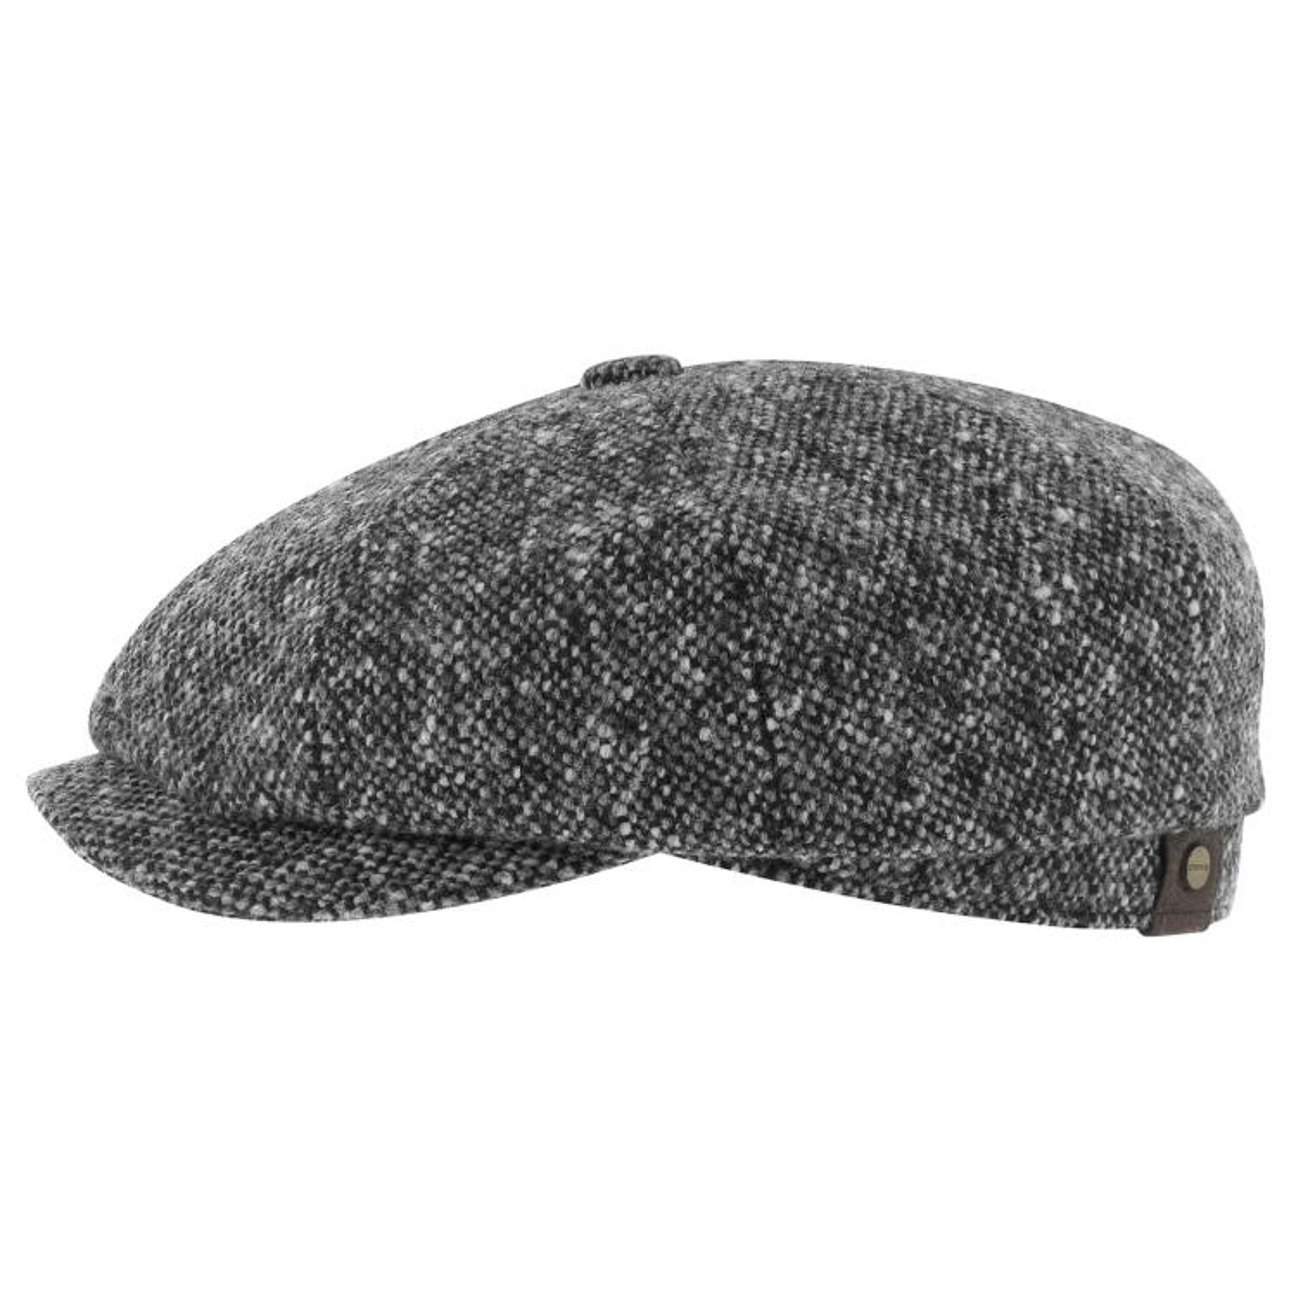 Stetson Hatteras Donegal Tweed Cap berretto newsboy cappello invernale piatto